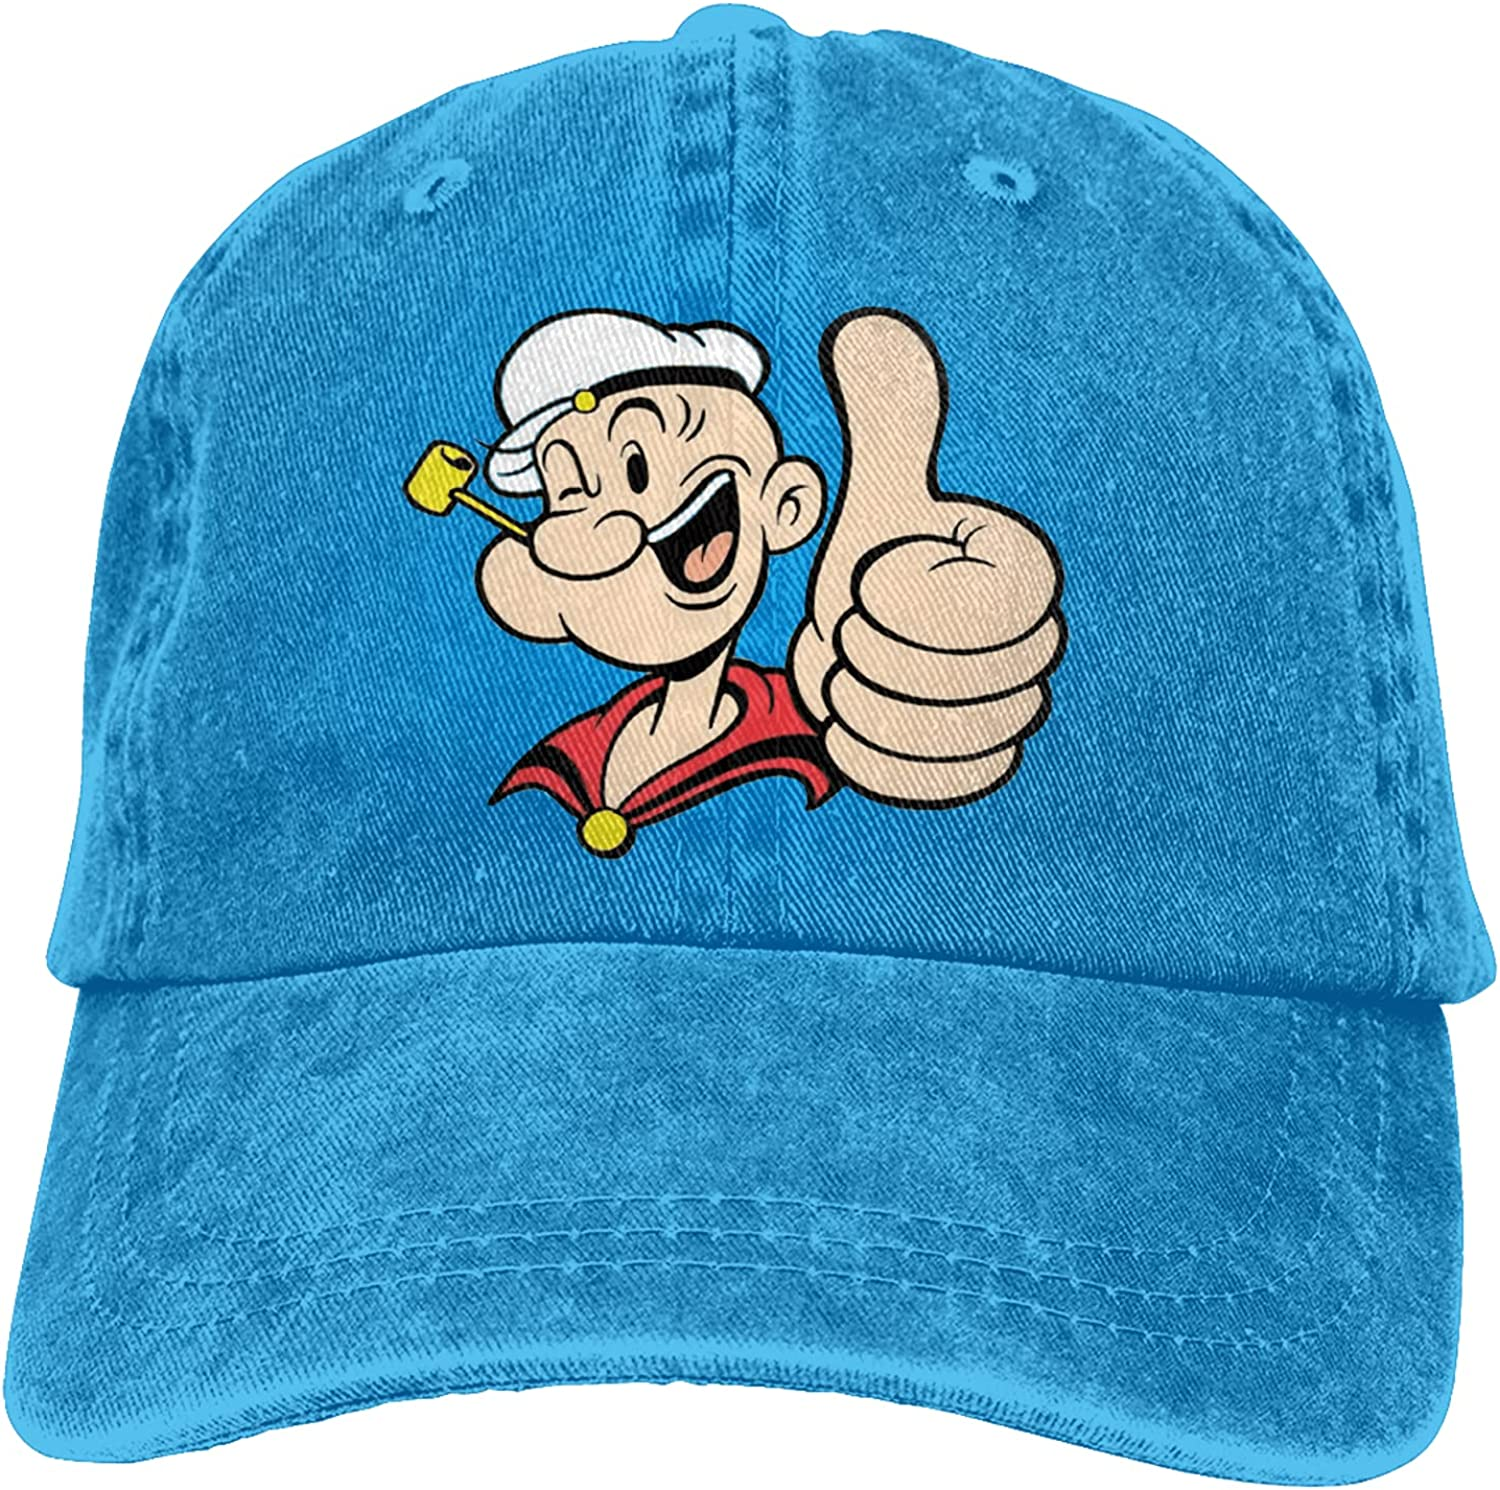 Fangpeilian Popeye Retro Adjustable Cap Unisex Fashion Cowboy Hat Baseball Cap, Suitable for Sports, Outdoor, Daily and Party